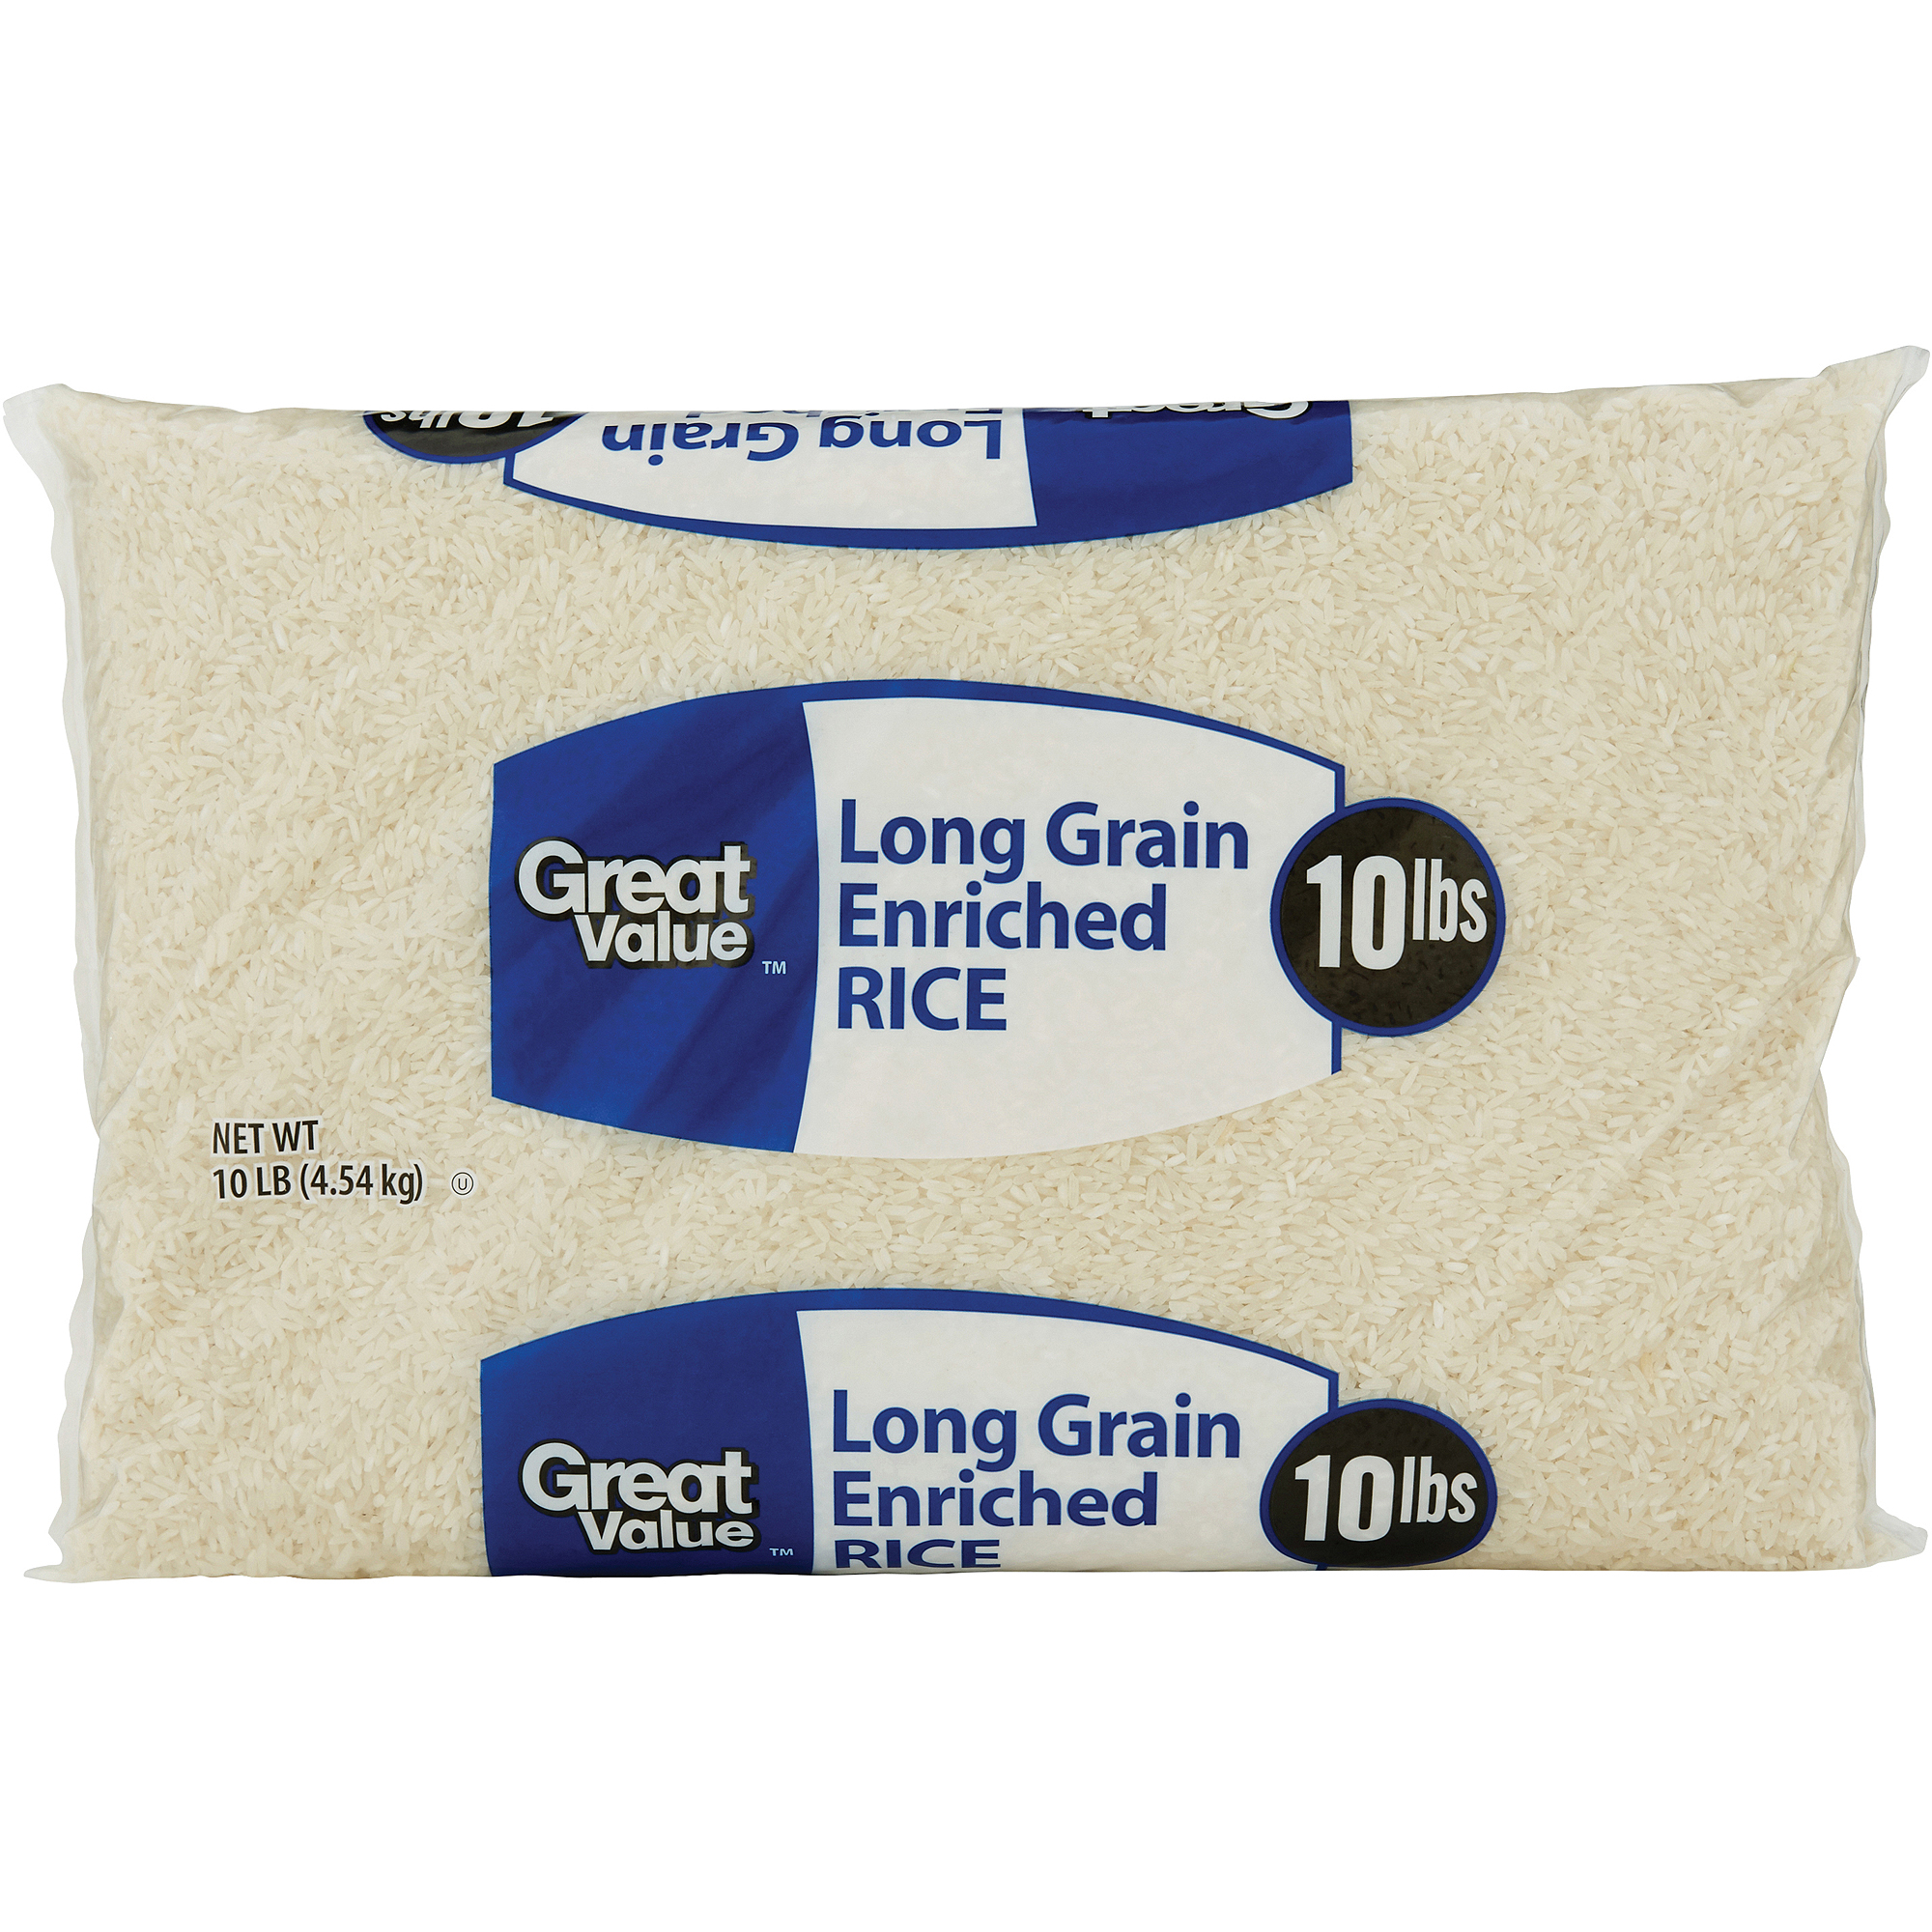 Great Value: Long Grain Enriched Rice, 10 Lb